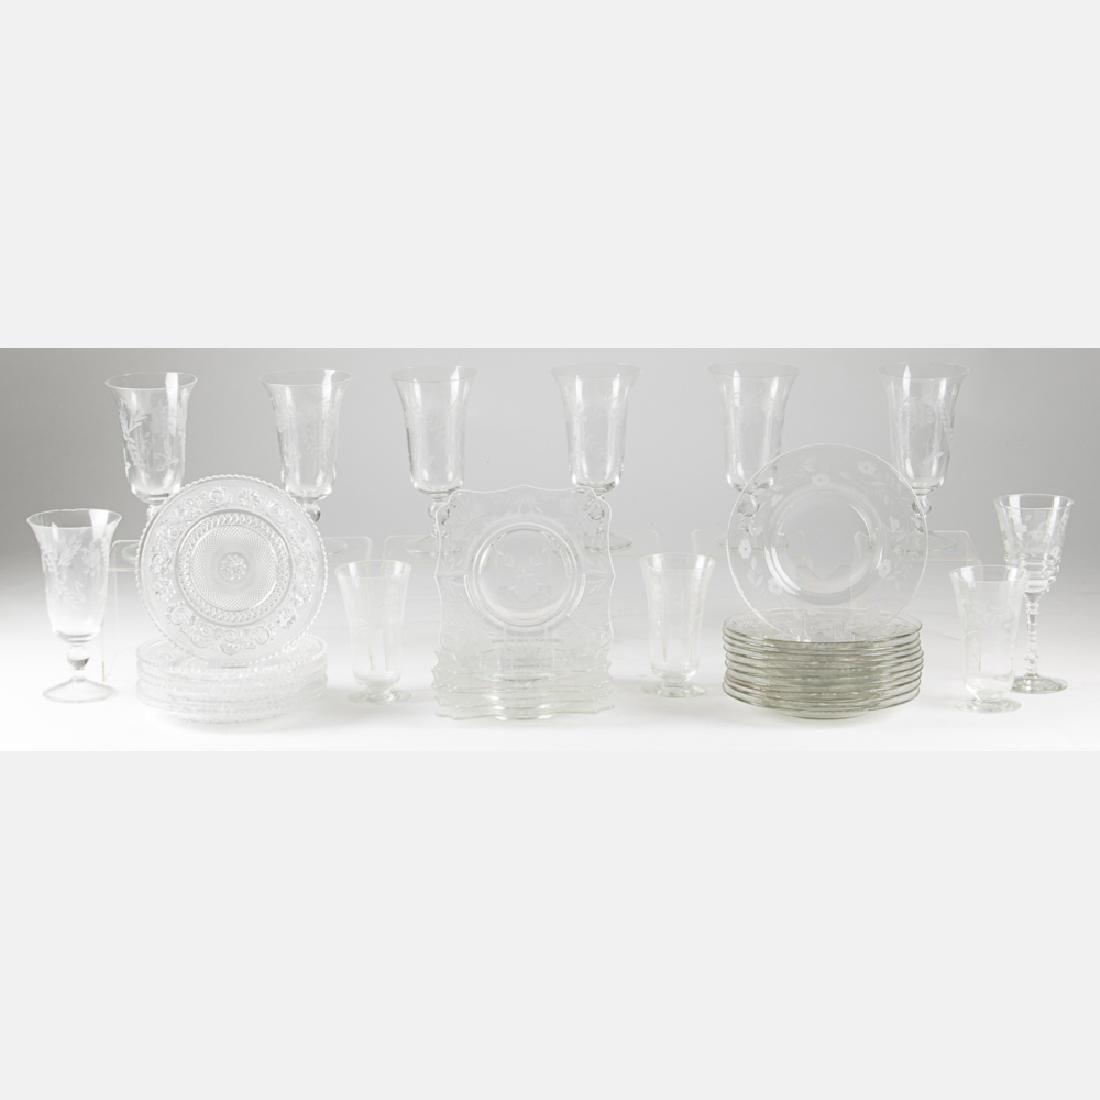 A Miscellaneous Collection of Etched and Pressed Glass